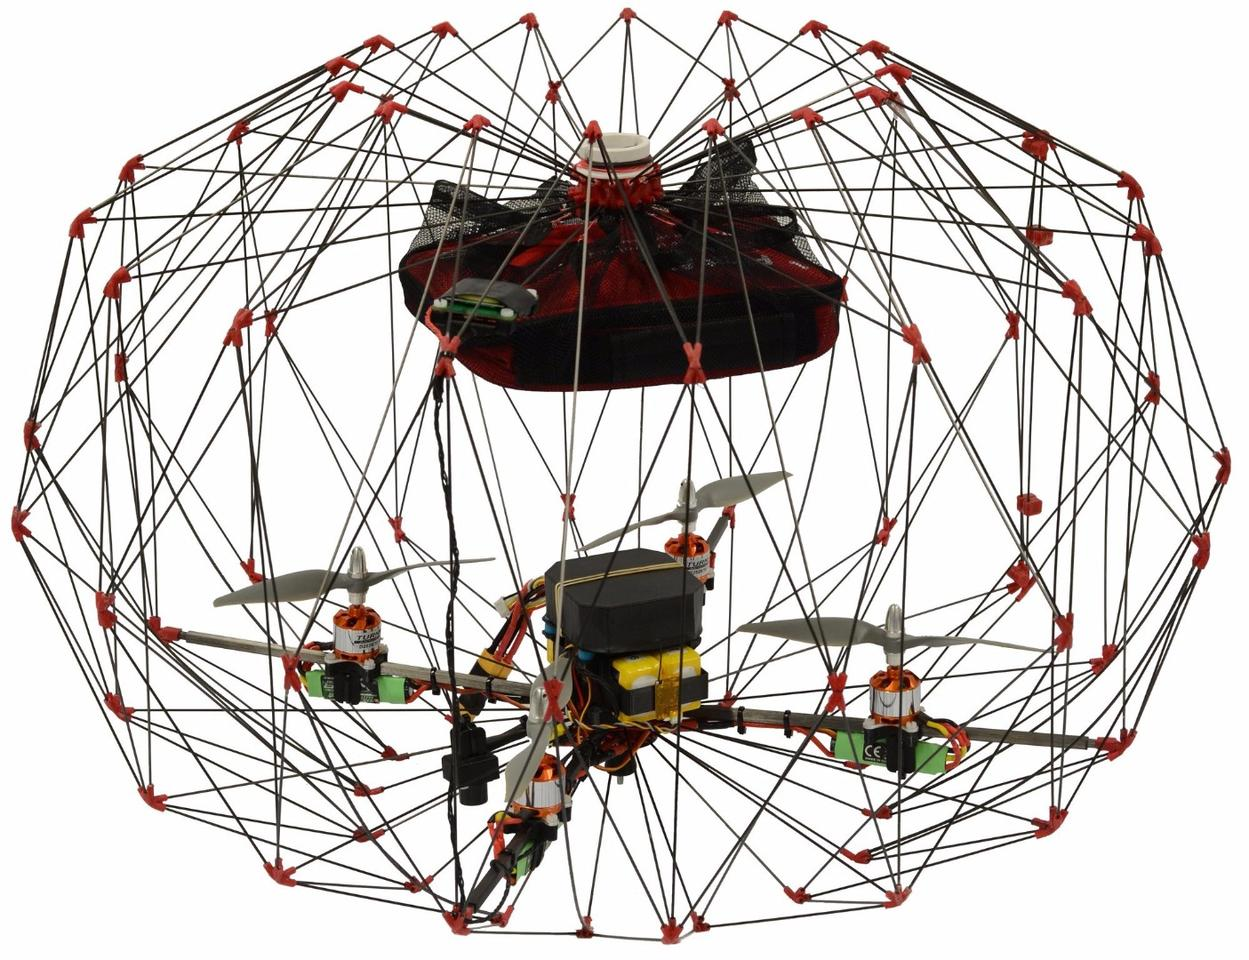 The EPFL drone and it's protective cage